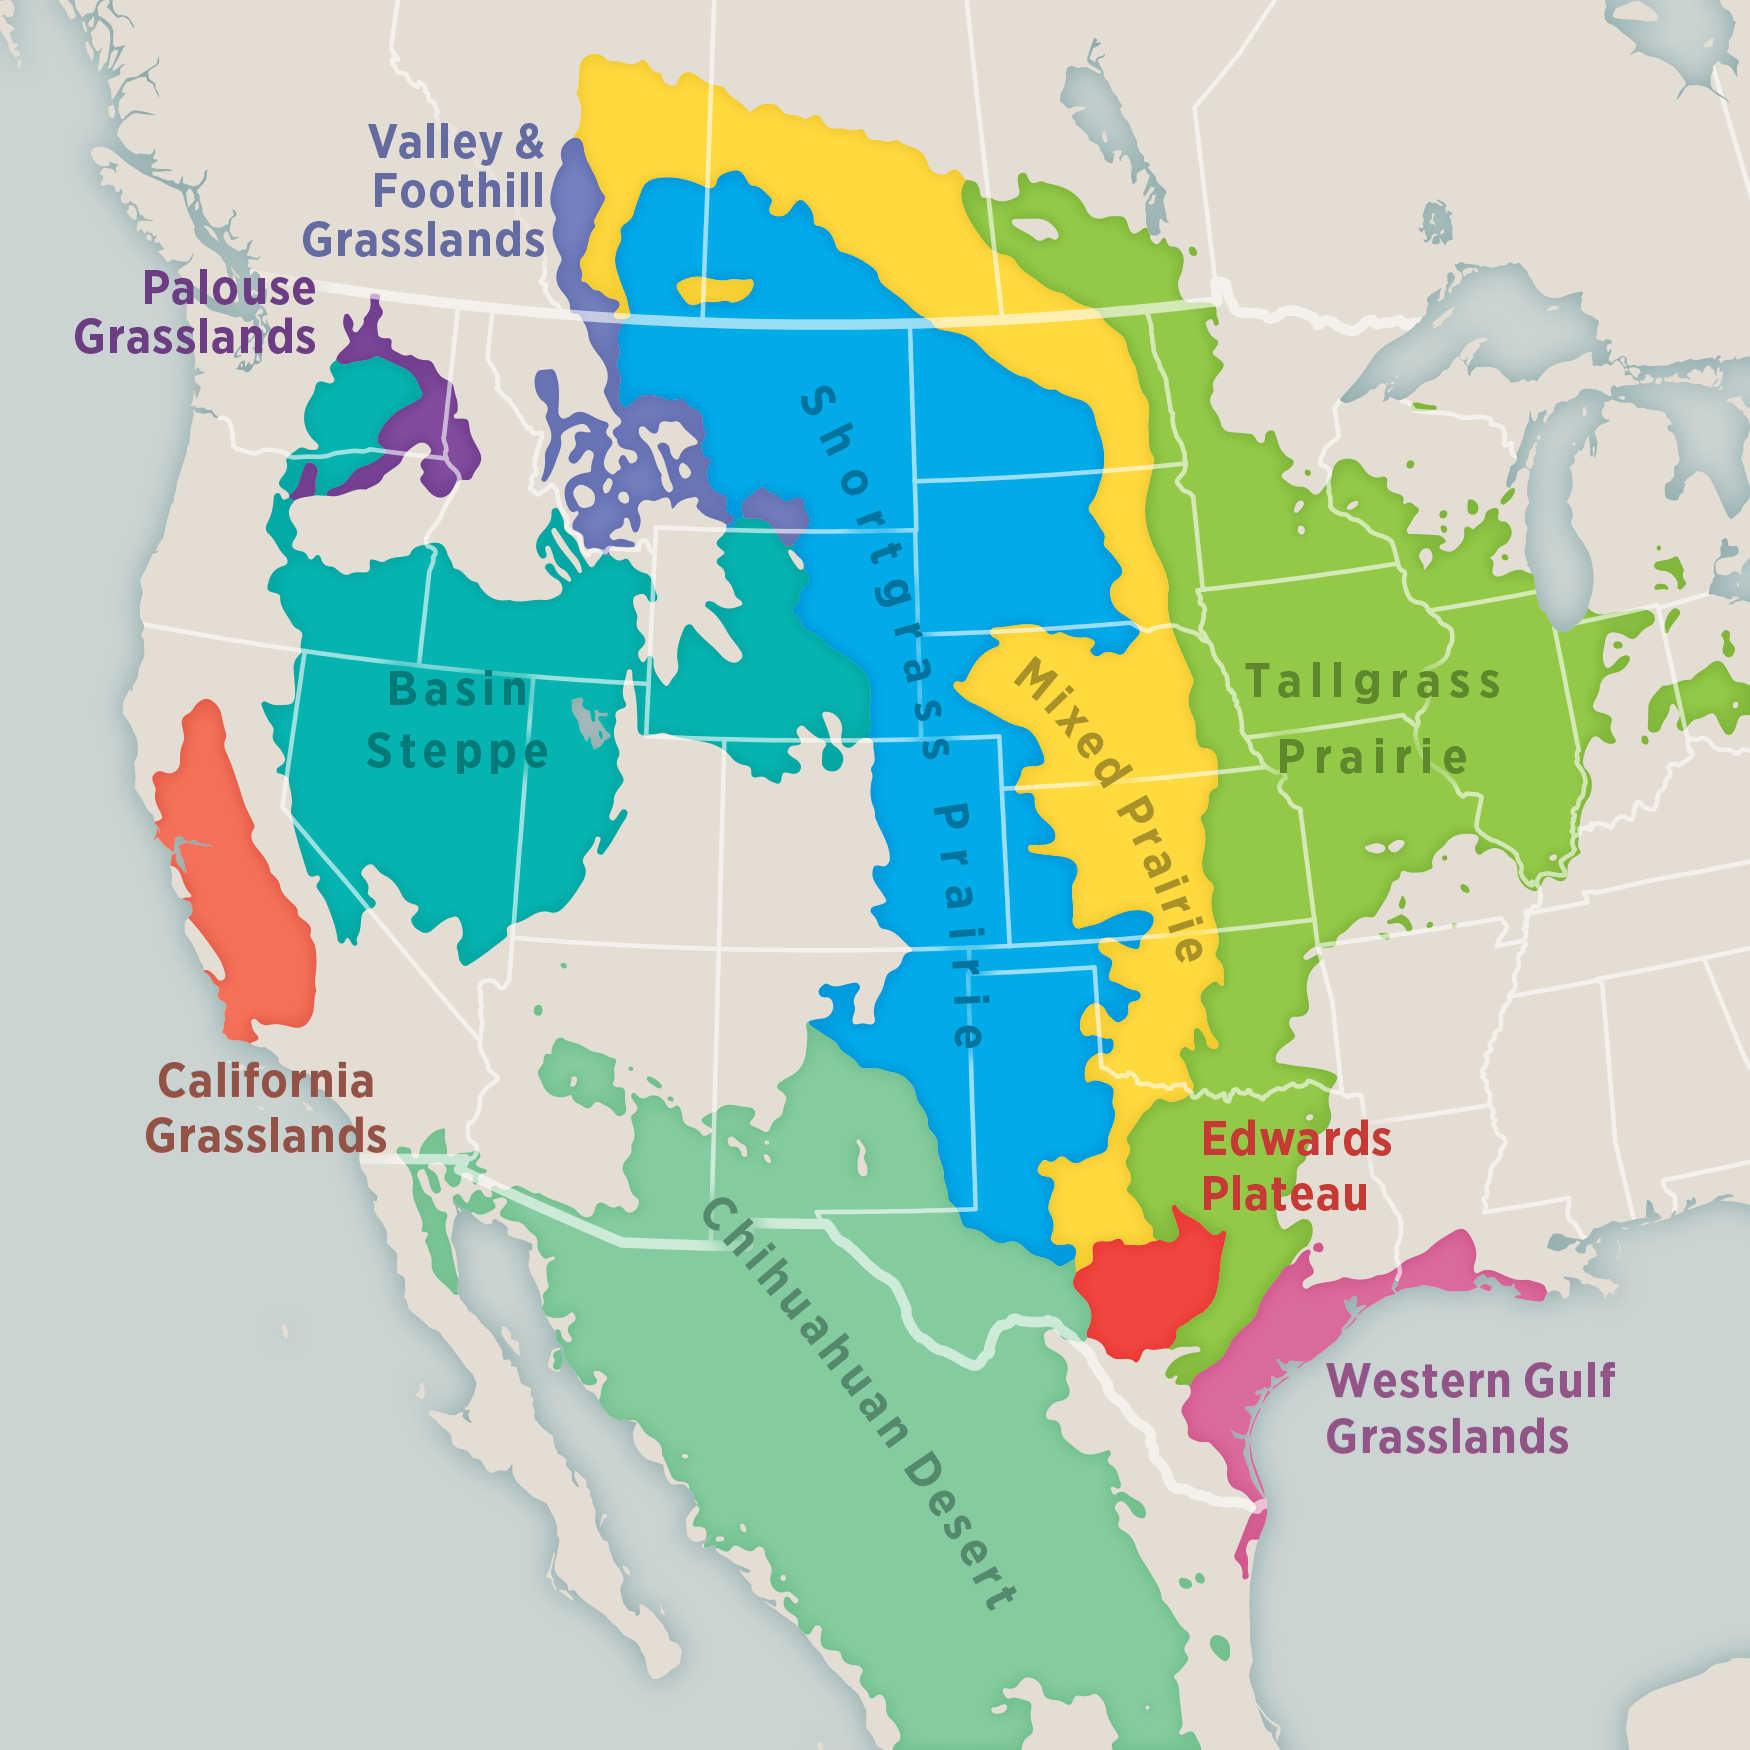 Historic grassland types of North America based on mapping data from NatureServe (Comer et al. 2018) and the International Vegetation Classification and Terrestrial Ecoregions of the World (Dixon et al. 2014). Map: Daniel Huffman